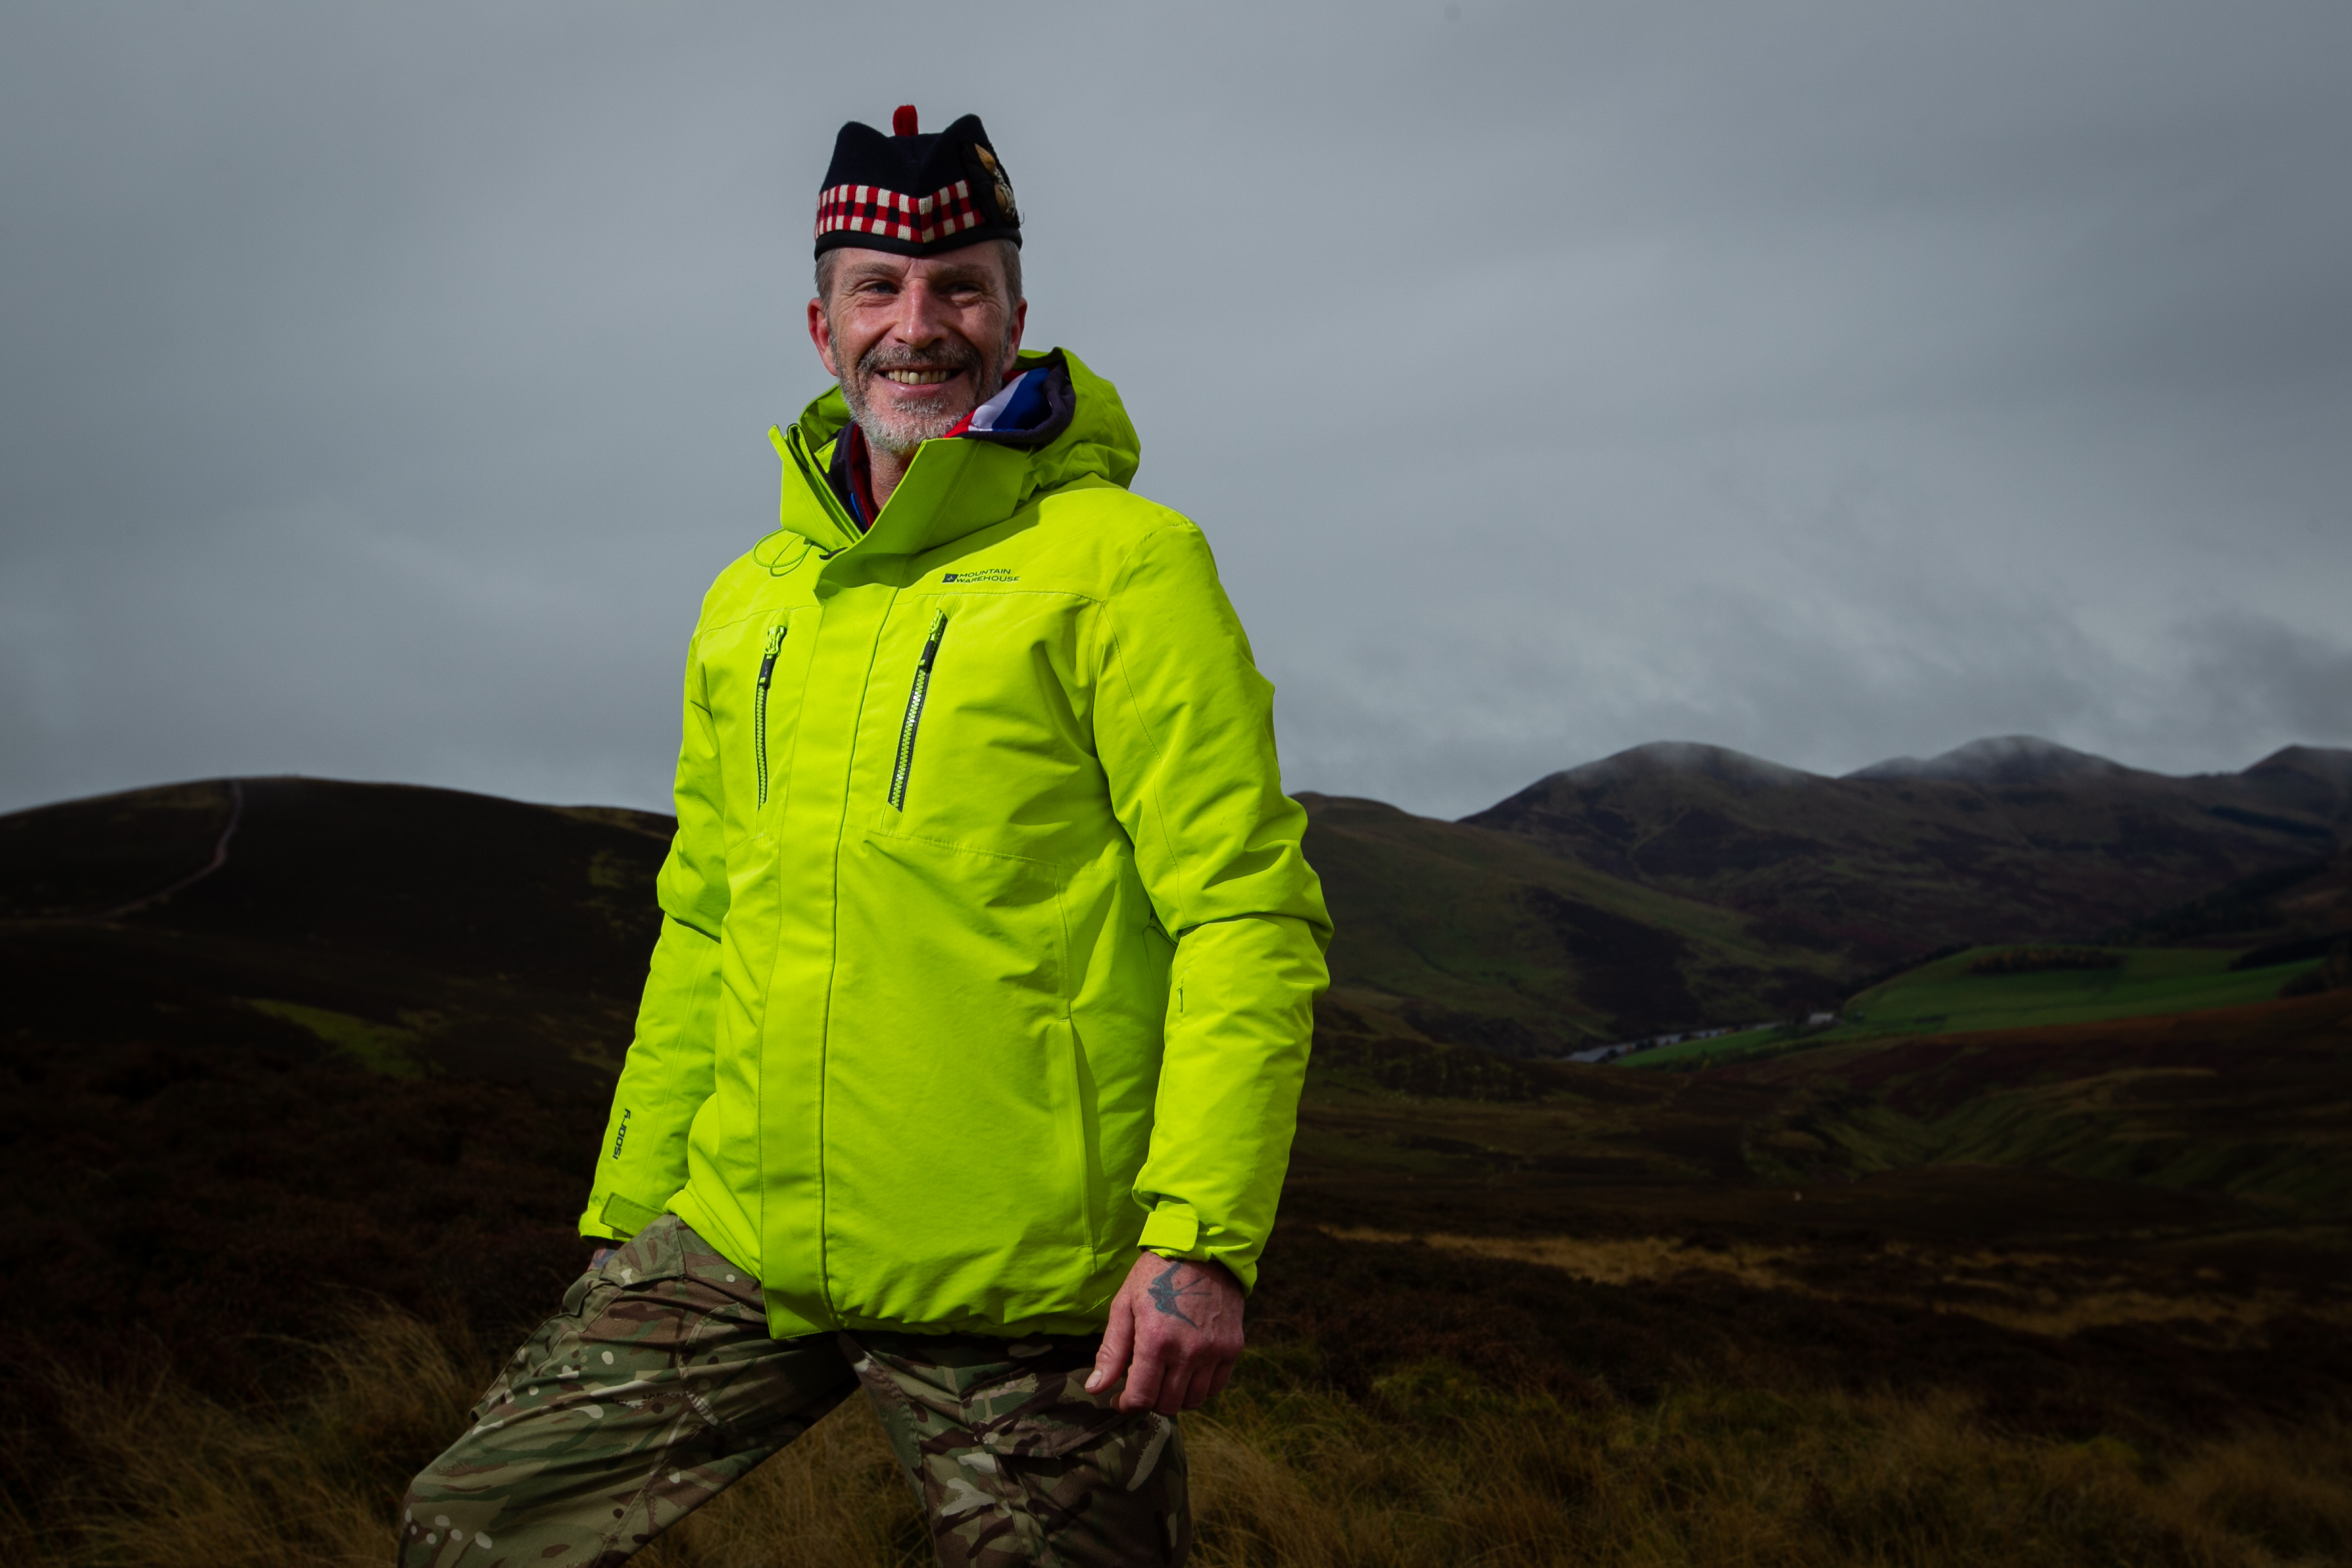 Marc Hutton set up a walking group as a way for veterans who are suffering from PTSD, depression, or other mental health issues, to come together, and socialise and talk. Pic shows: Scott Muir. (Andrew Cawley)